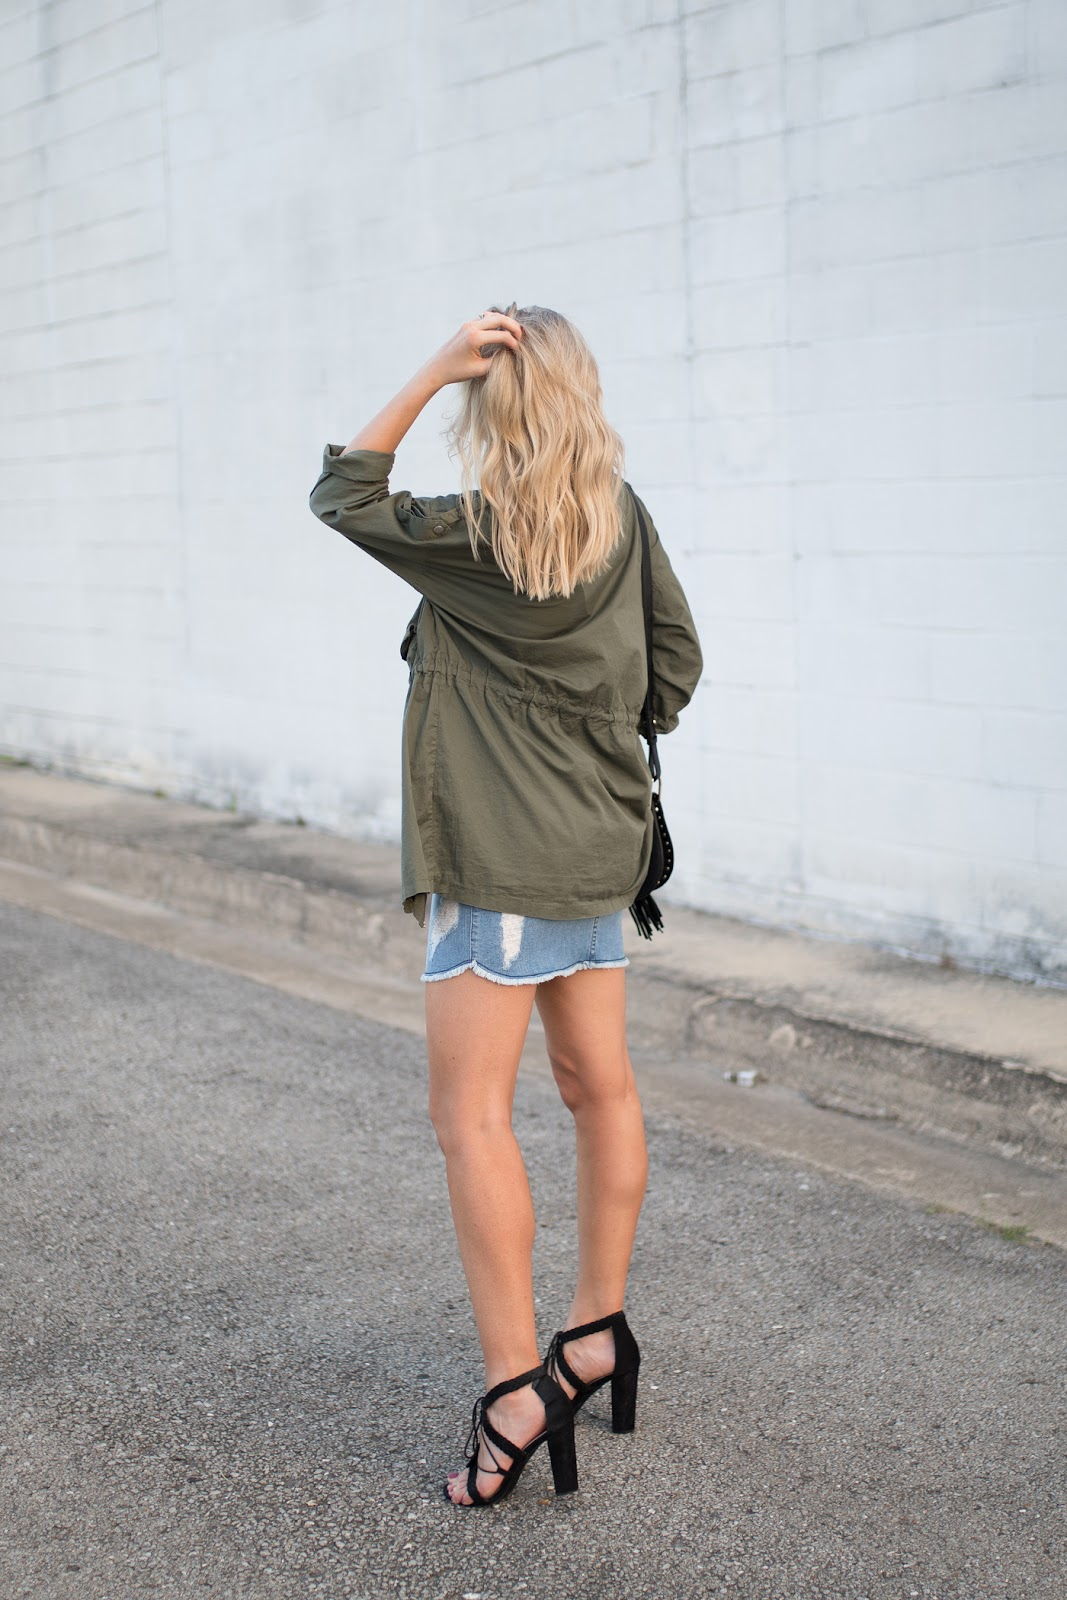 Summer-to-fall transition outfit